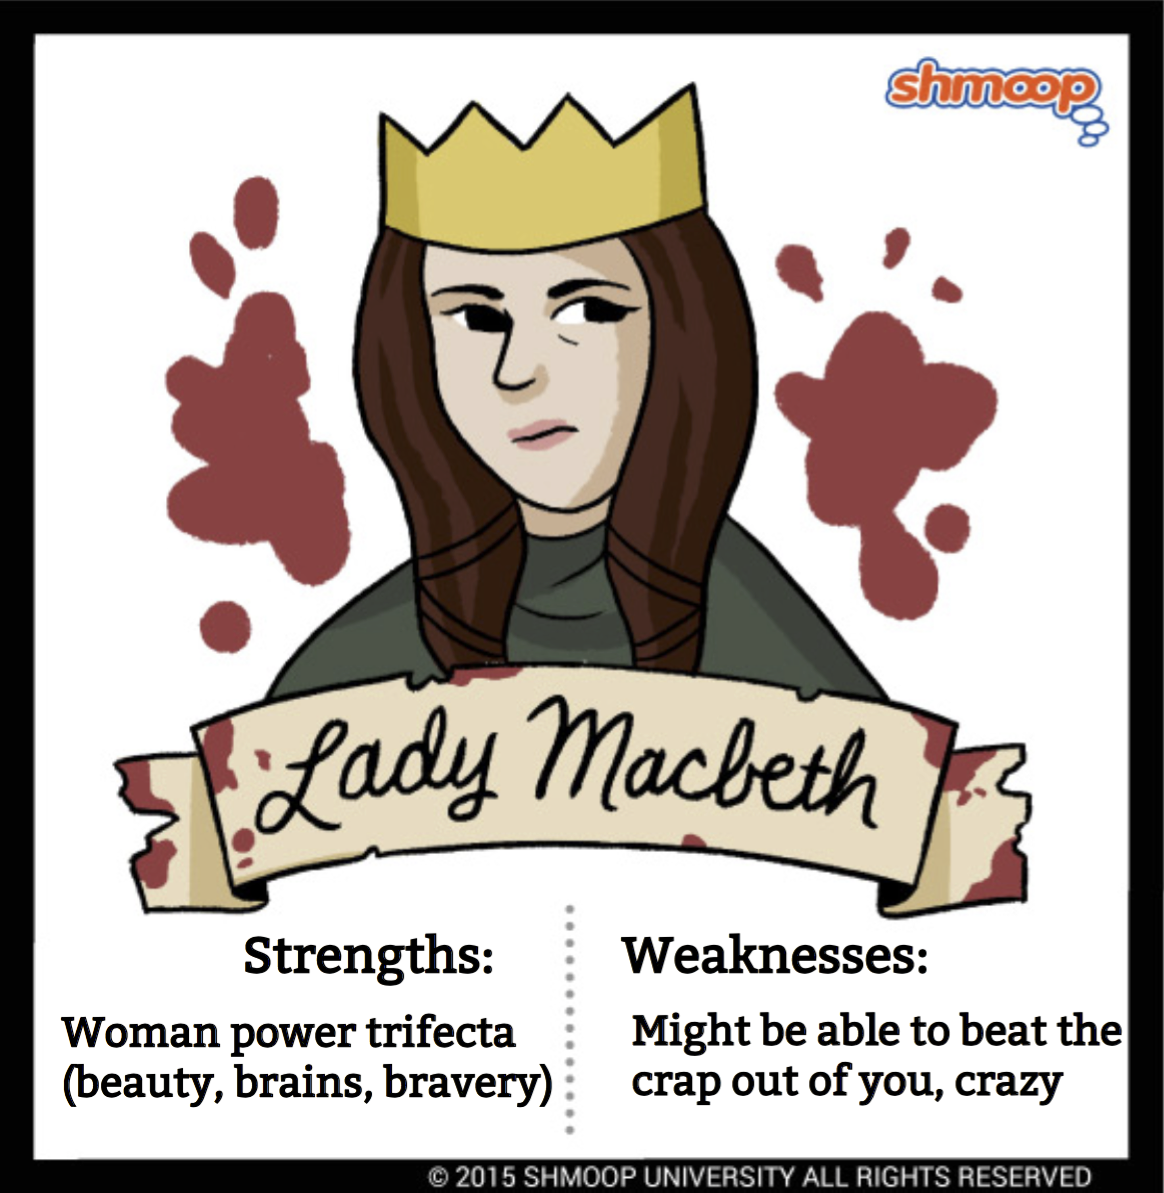 an analysis of the character of lady macbeth in william shakespeares macbeth Symbolism in shakespeare's macbeth in william shakespeare's macbeth madison greenawalt on lady macbeth: character analysis.